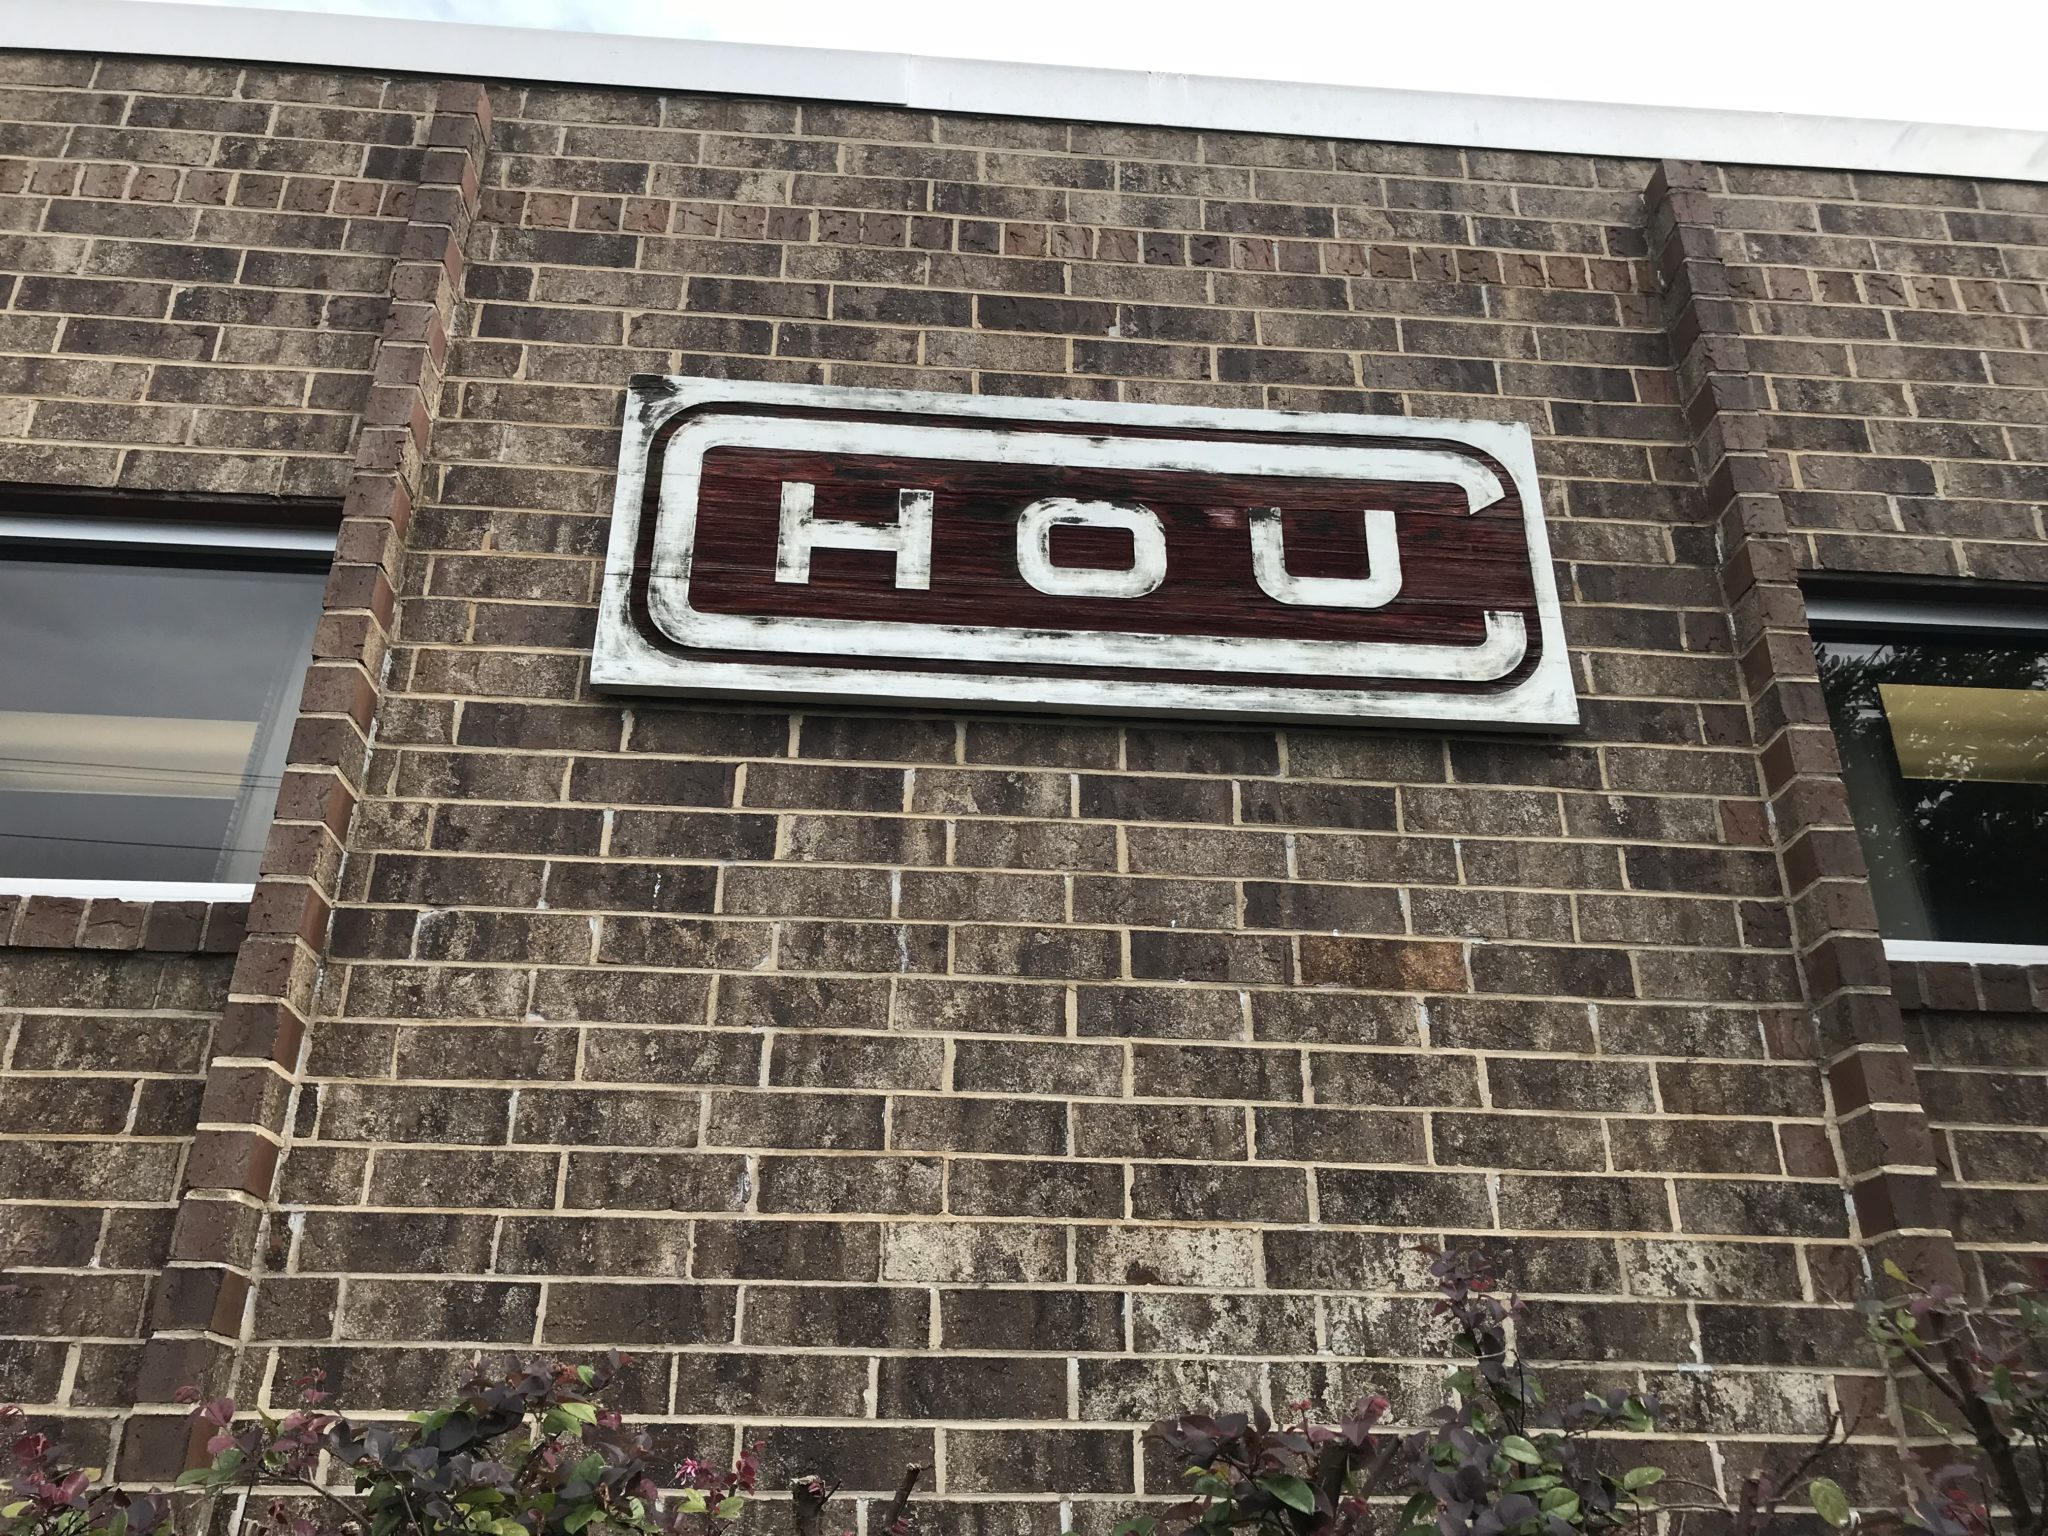 hdu signs, sand blasted signs, exterior signs, Signs Charlotte, signs pineville, Signs NC, logo signs, building signs, business signs, custom signs, outdoor signs, outside signs, Office Signs, office building signs, non lit signs, non illuminated signs